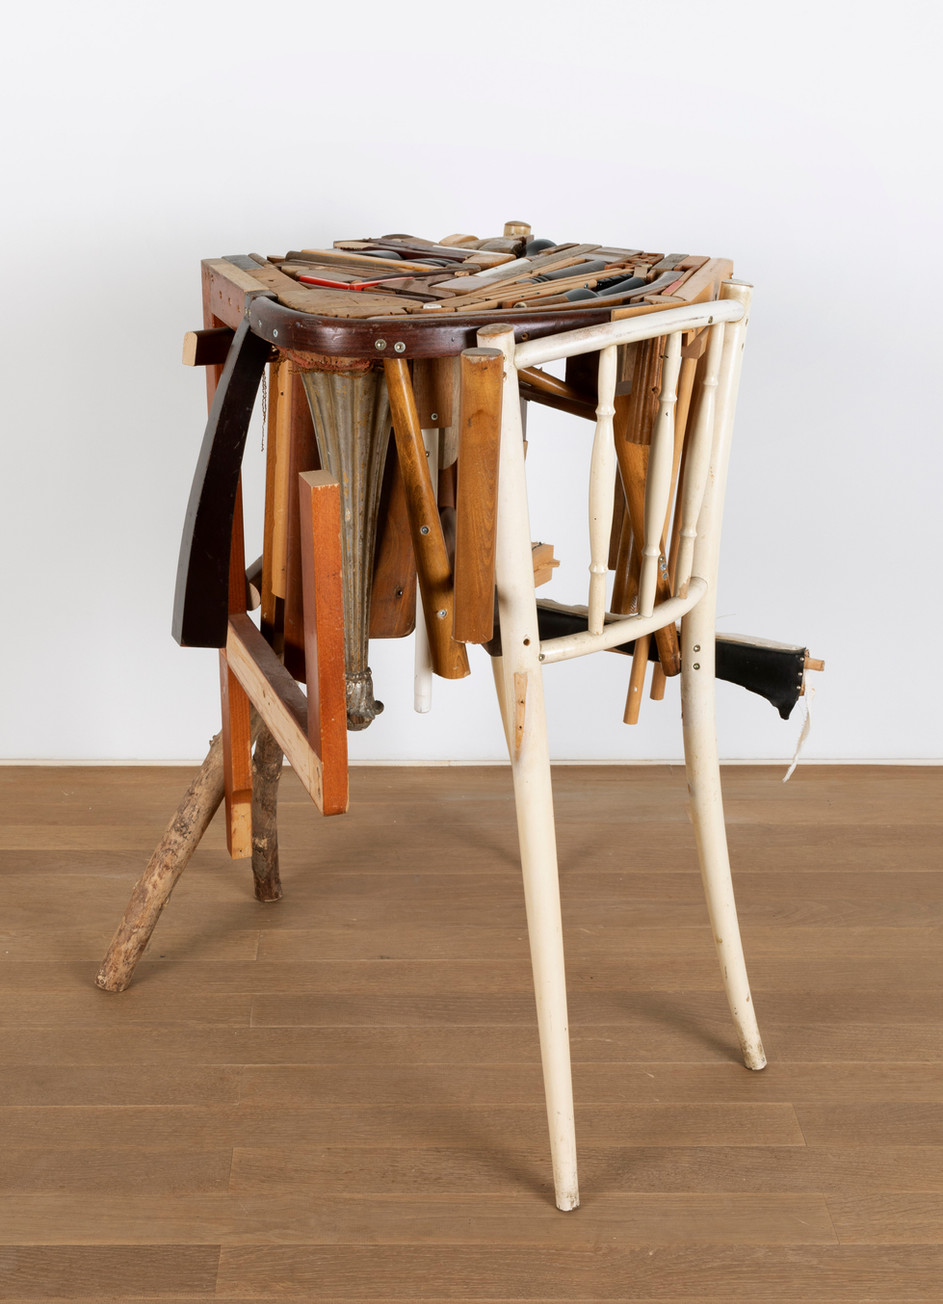 GELATIN Antonella, 2011 wood, used furniture parts, metal 87 x 82 x 84 cm